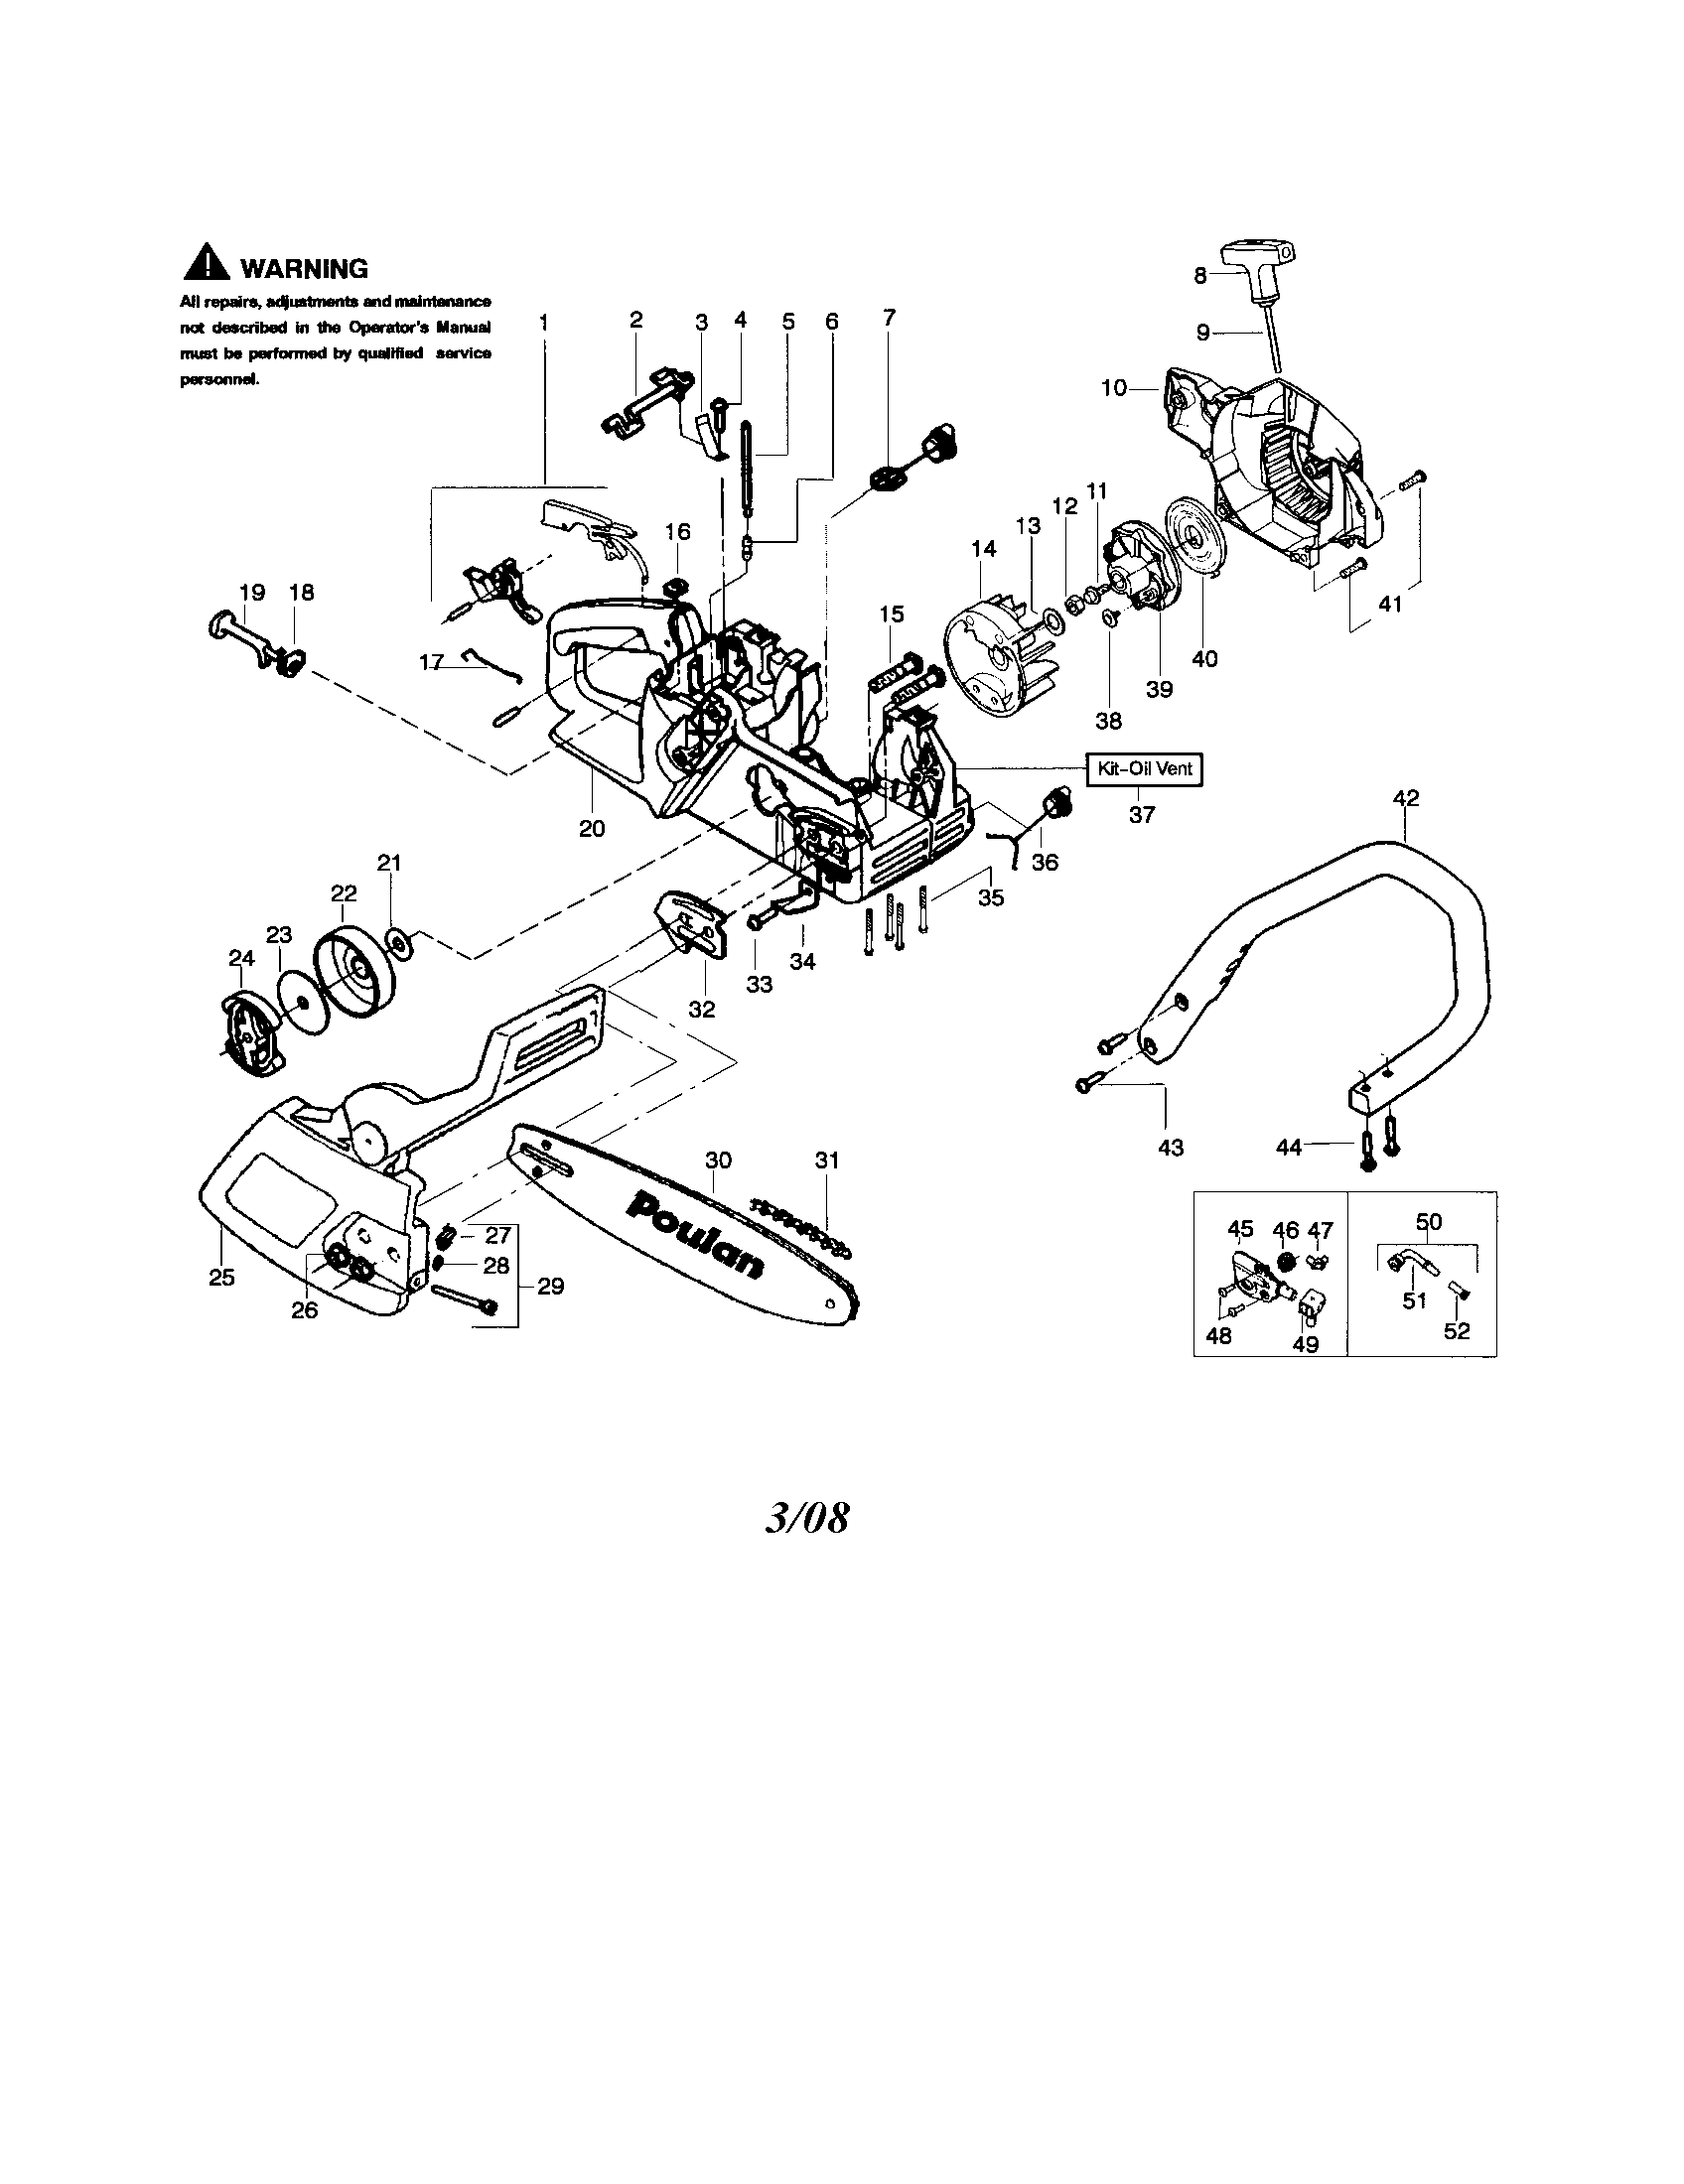 poulan 2150 fuel line diagram 1972 fj40 wiring pin 2050 2175 2375 chainsaw parts list page 3